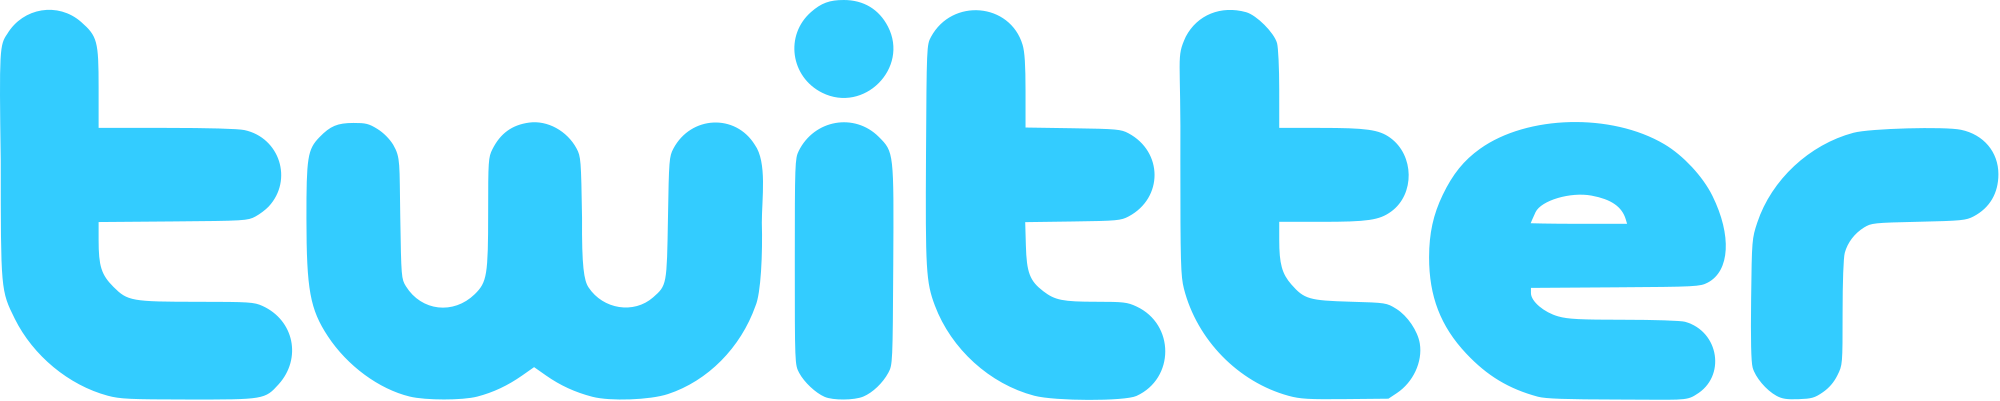 File svg wikimedia commons. Twitter png logo